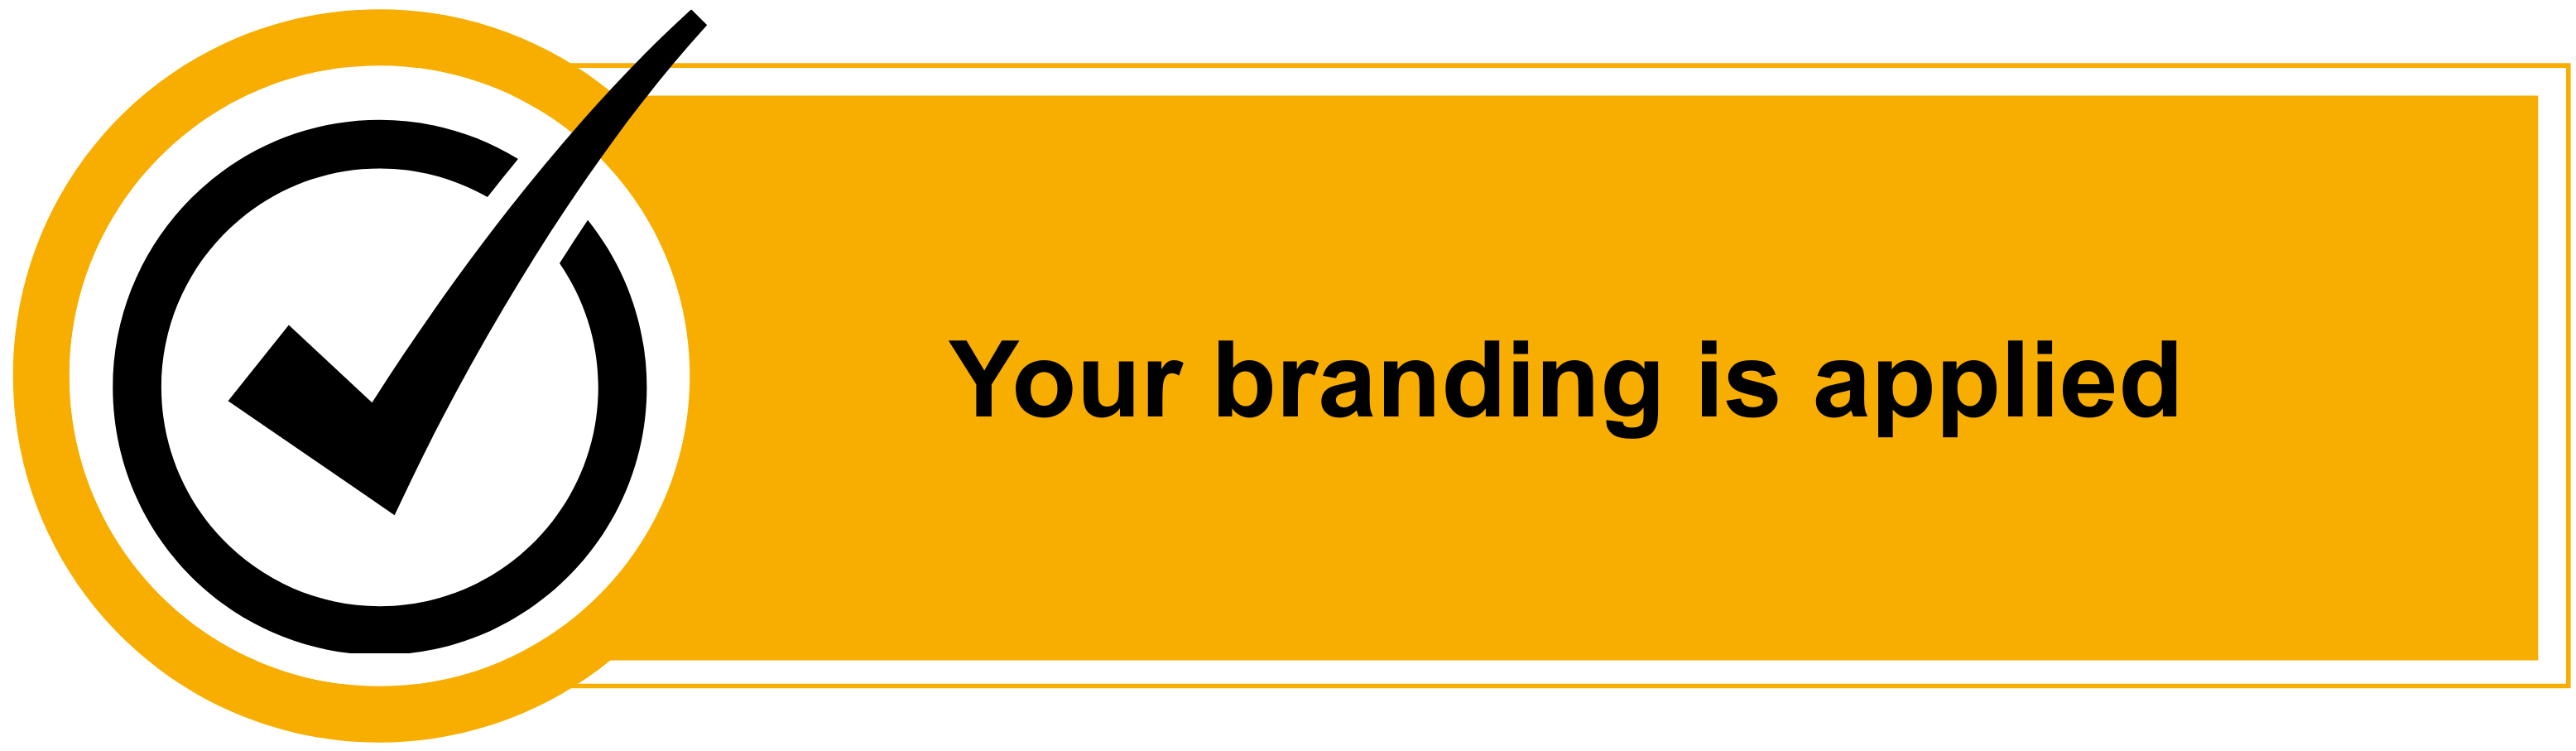 Your branding is applied